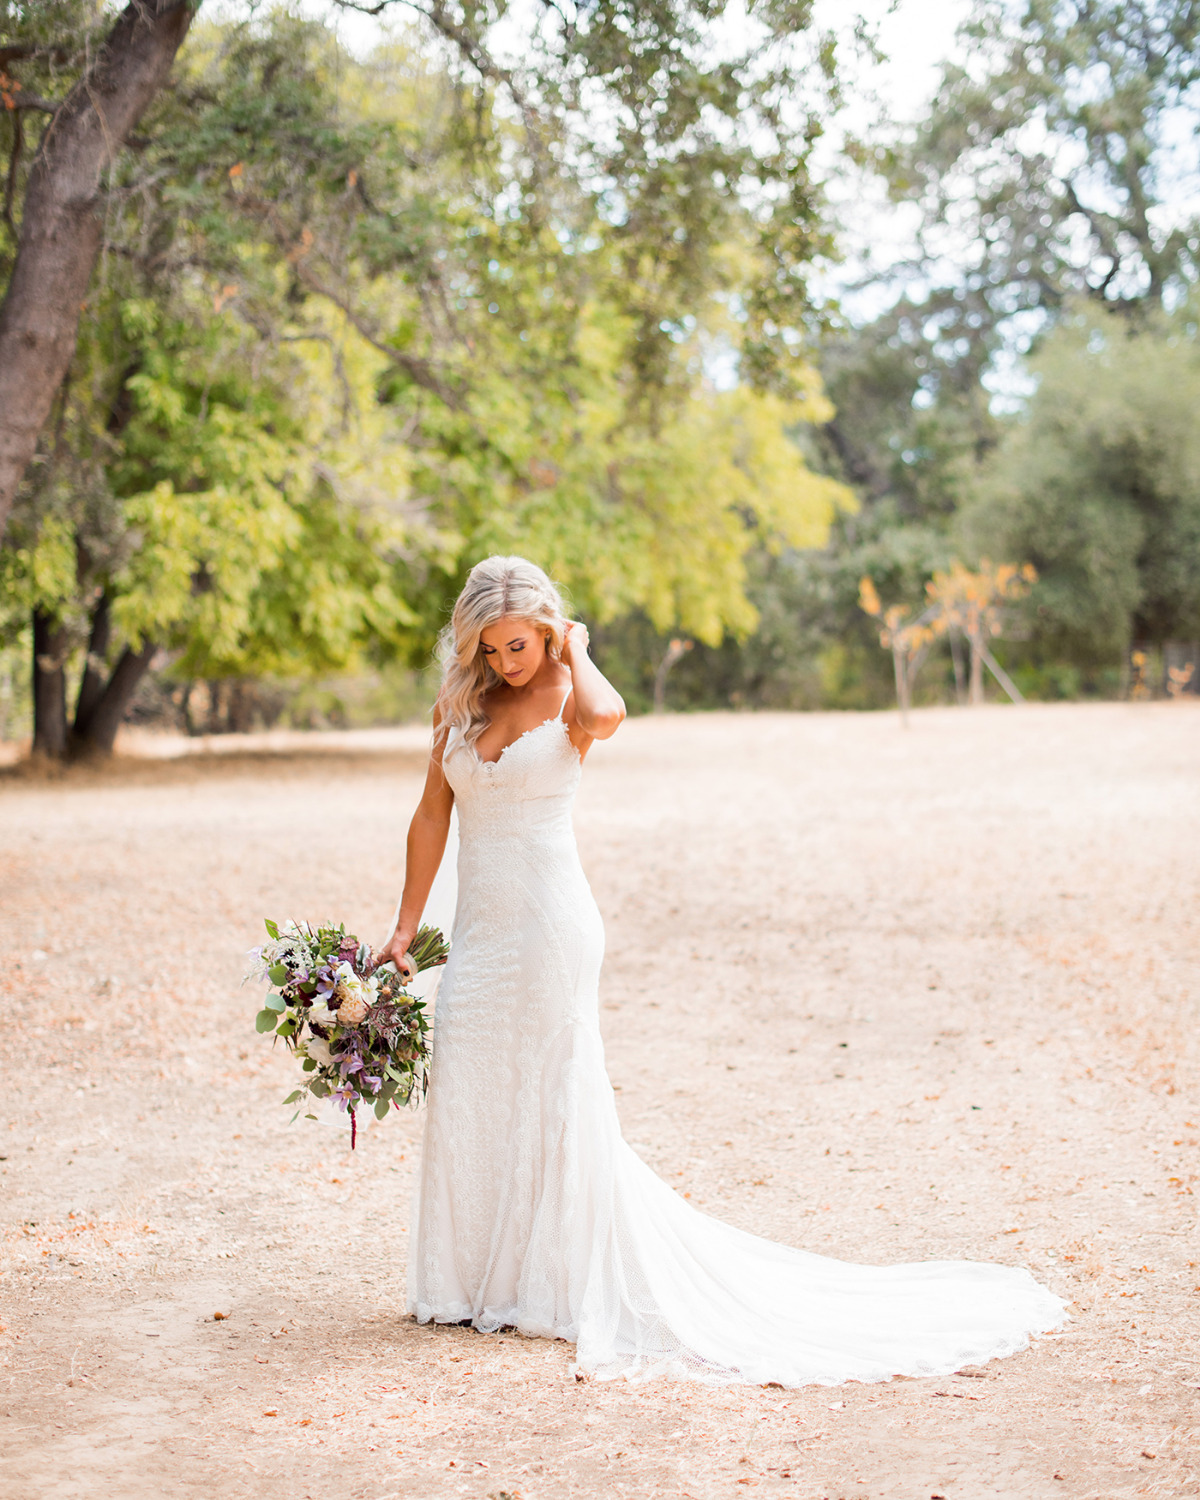 wedding dress for your rustic wedding day